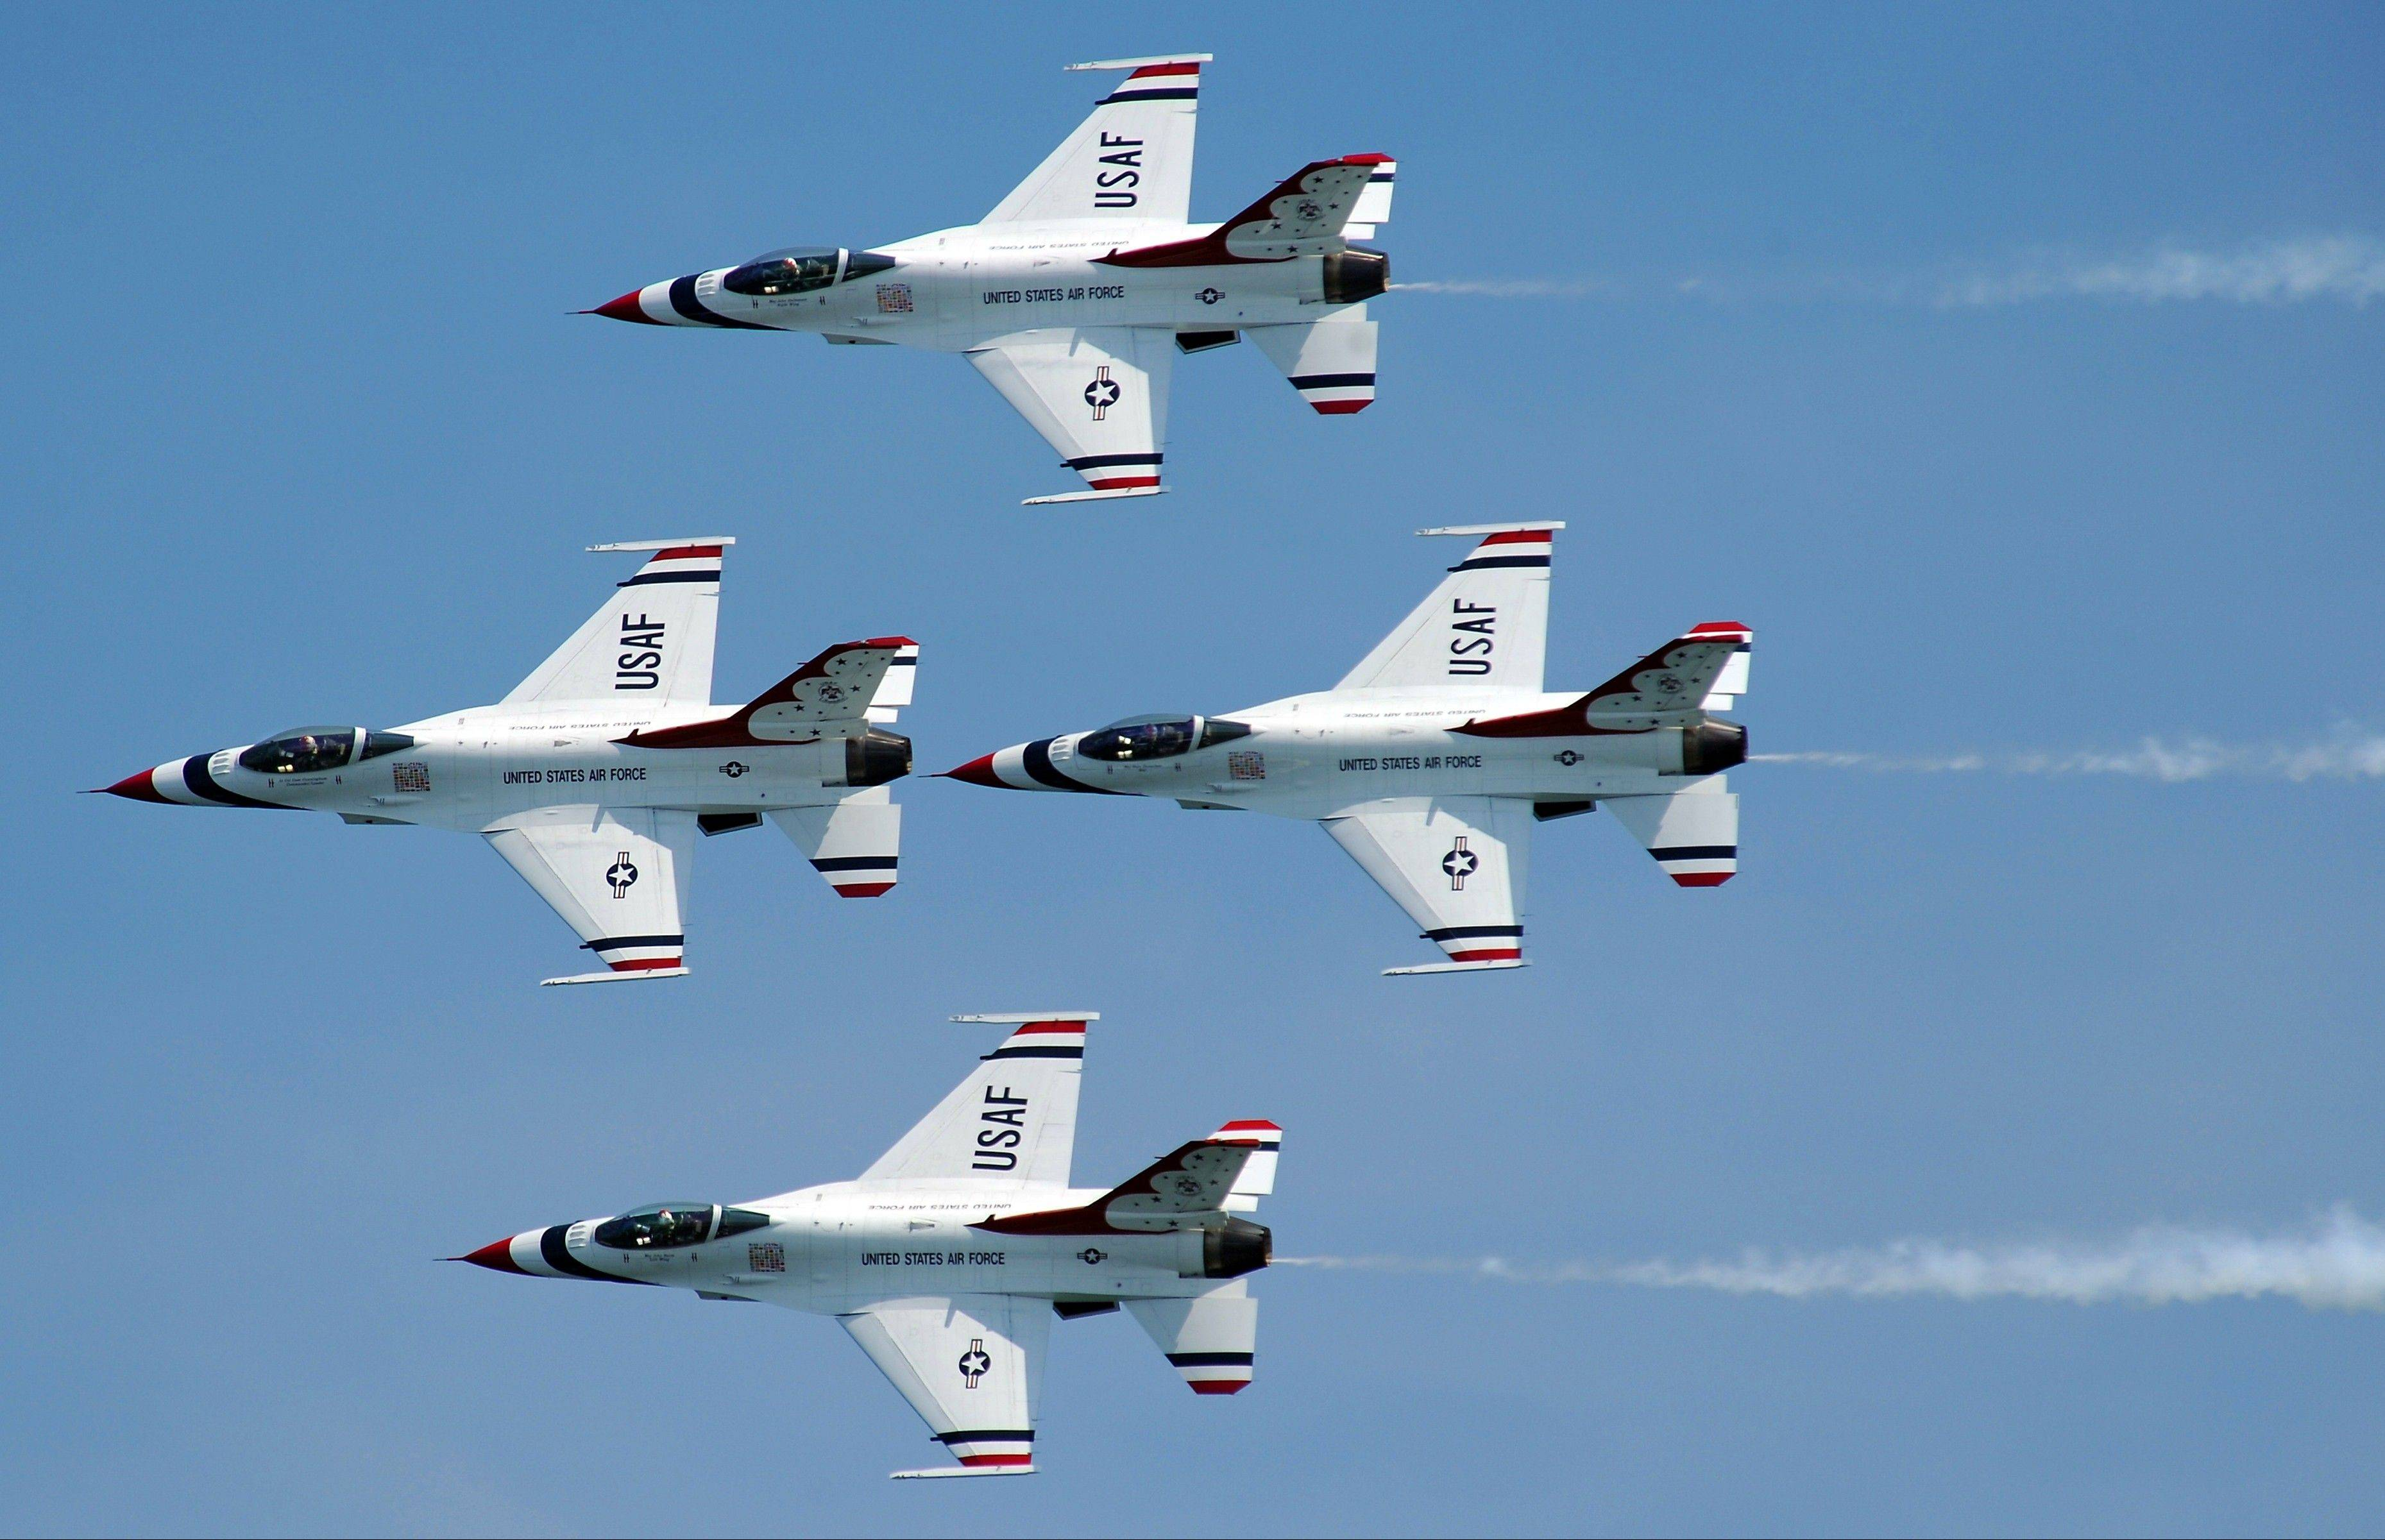 The U.S. Air Force Thunderbirds soar through the sky in tight formation.